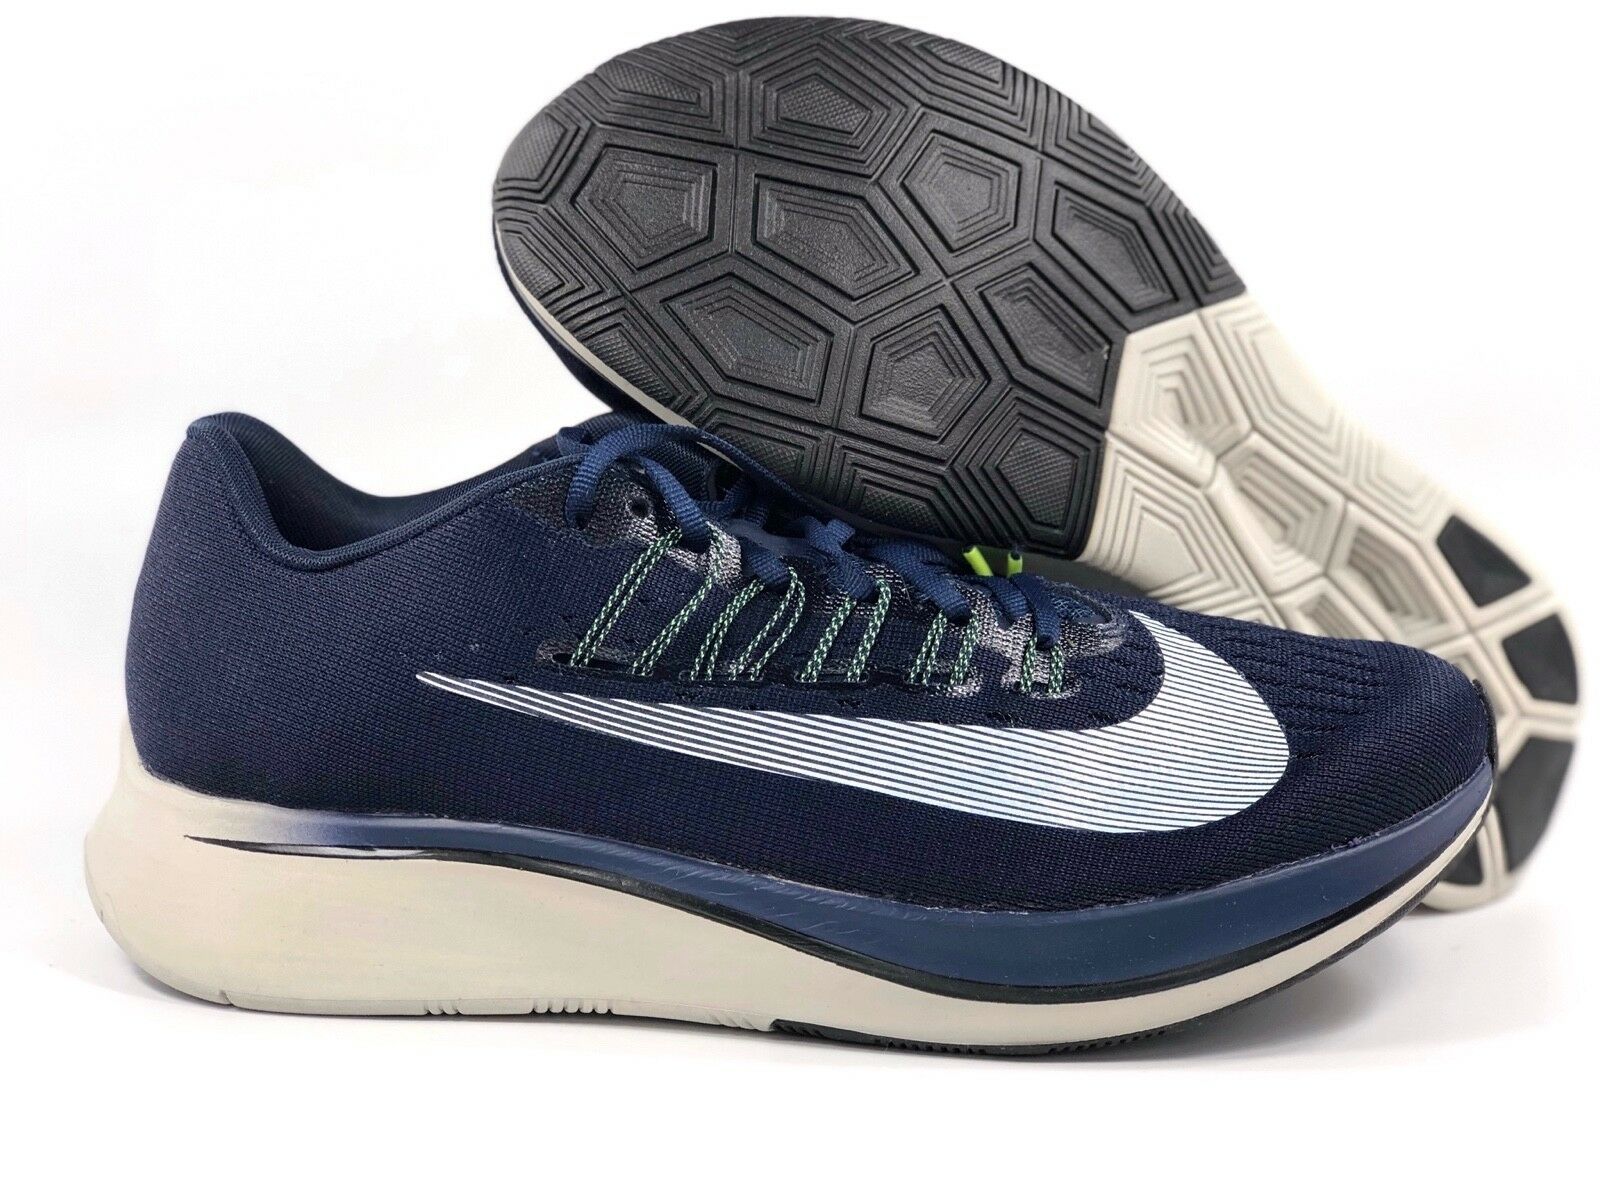 Nike Zoom Fly Obsidian Navy bluee White Running shoes 880848-405 Mens 7.5-13